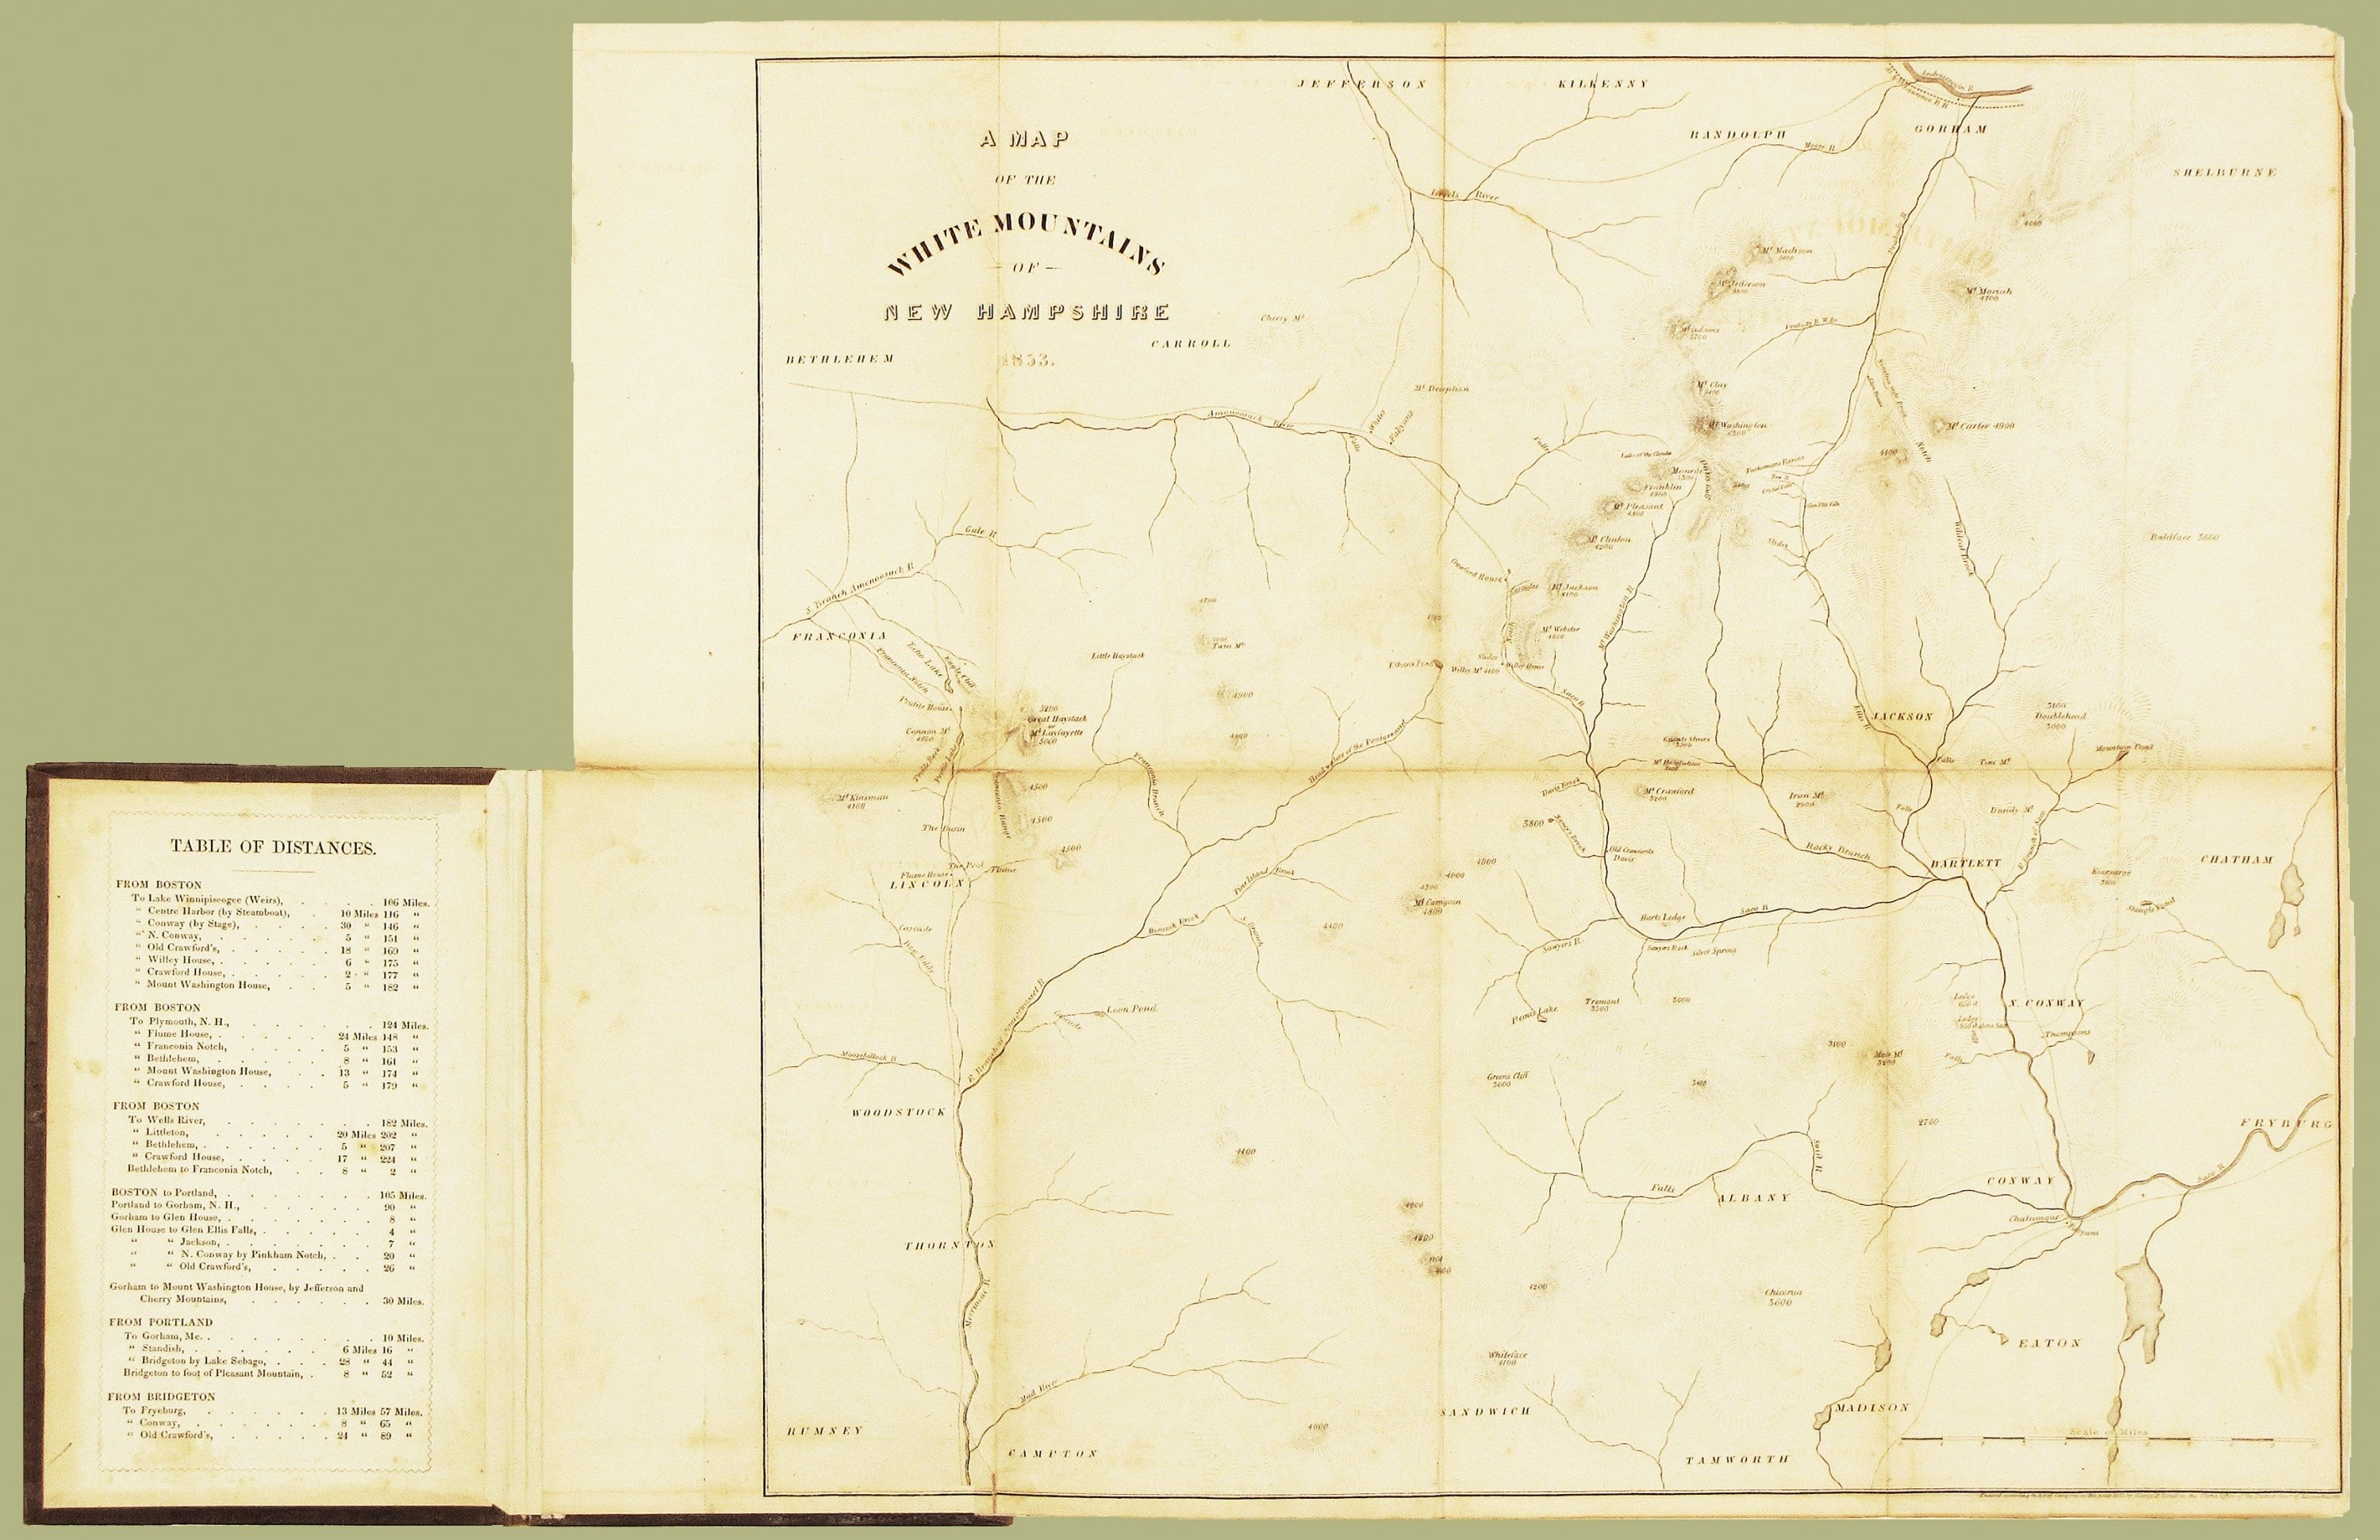 Topographic Map Mountains.The First Topographic Map Of The White Mountains Rare Antique Maps